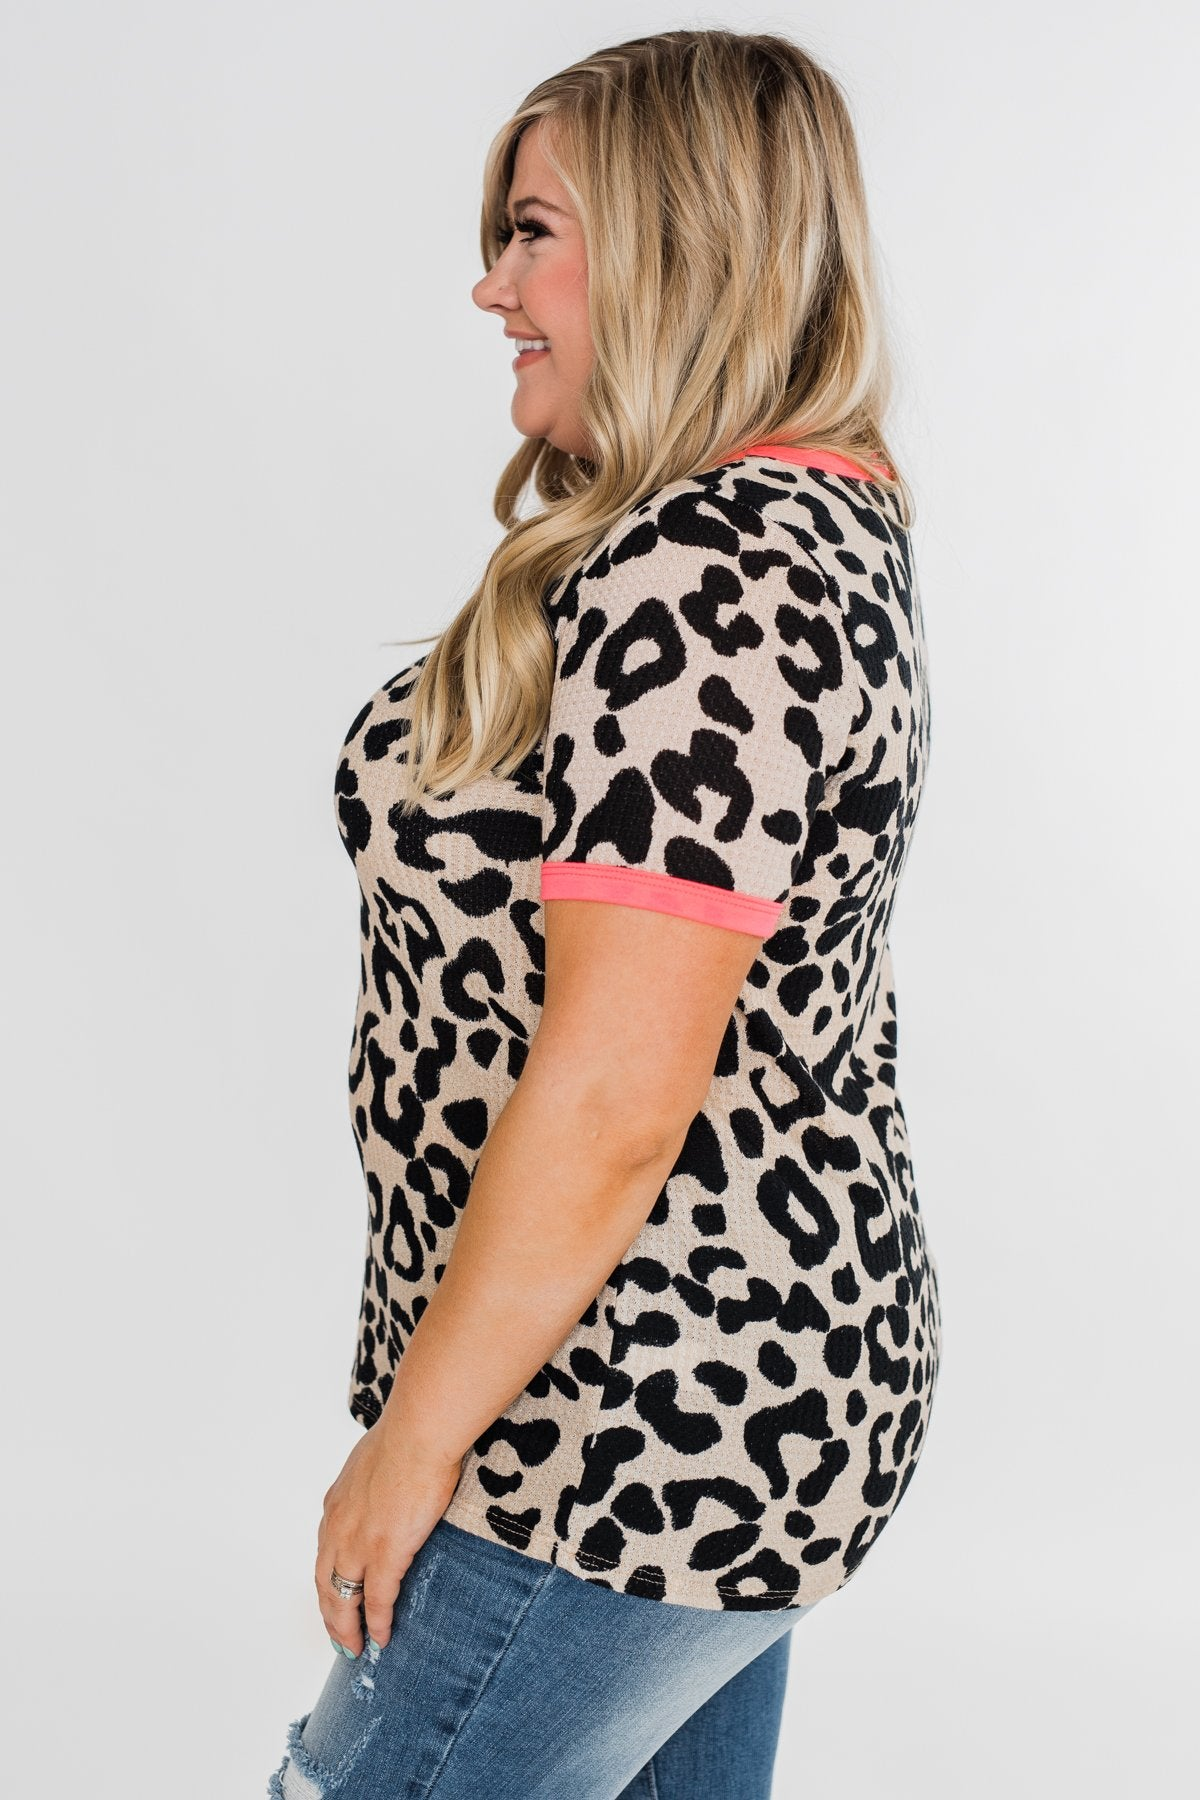 Love for Leopard Short Sleeve Top- Neutral & Neon Pink